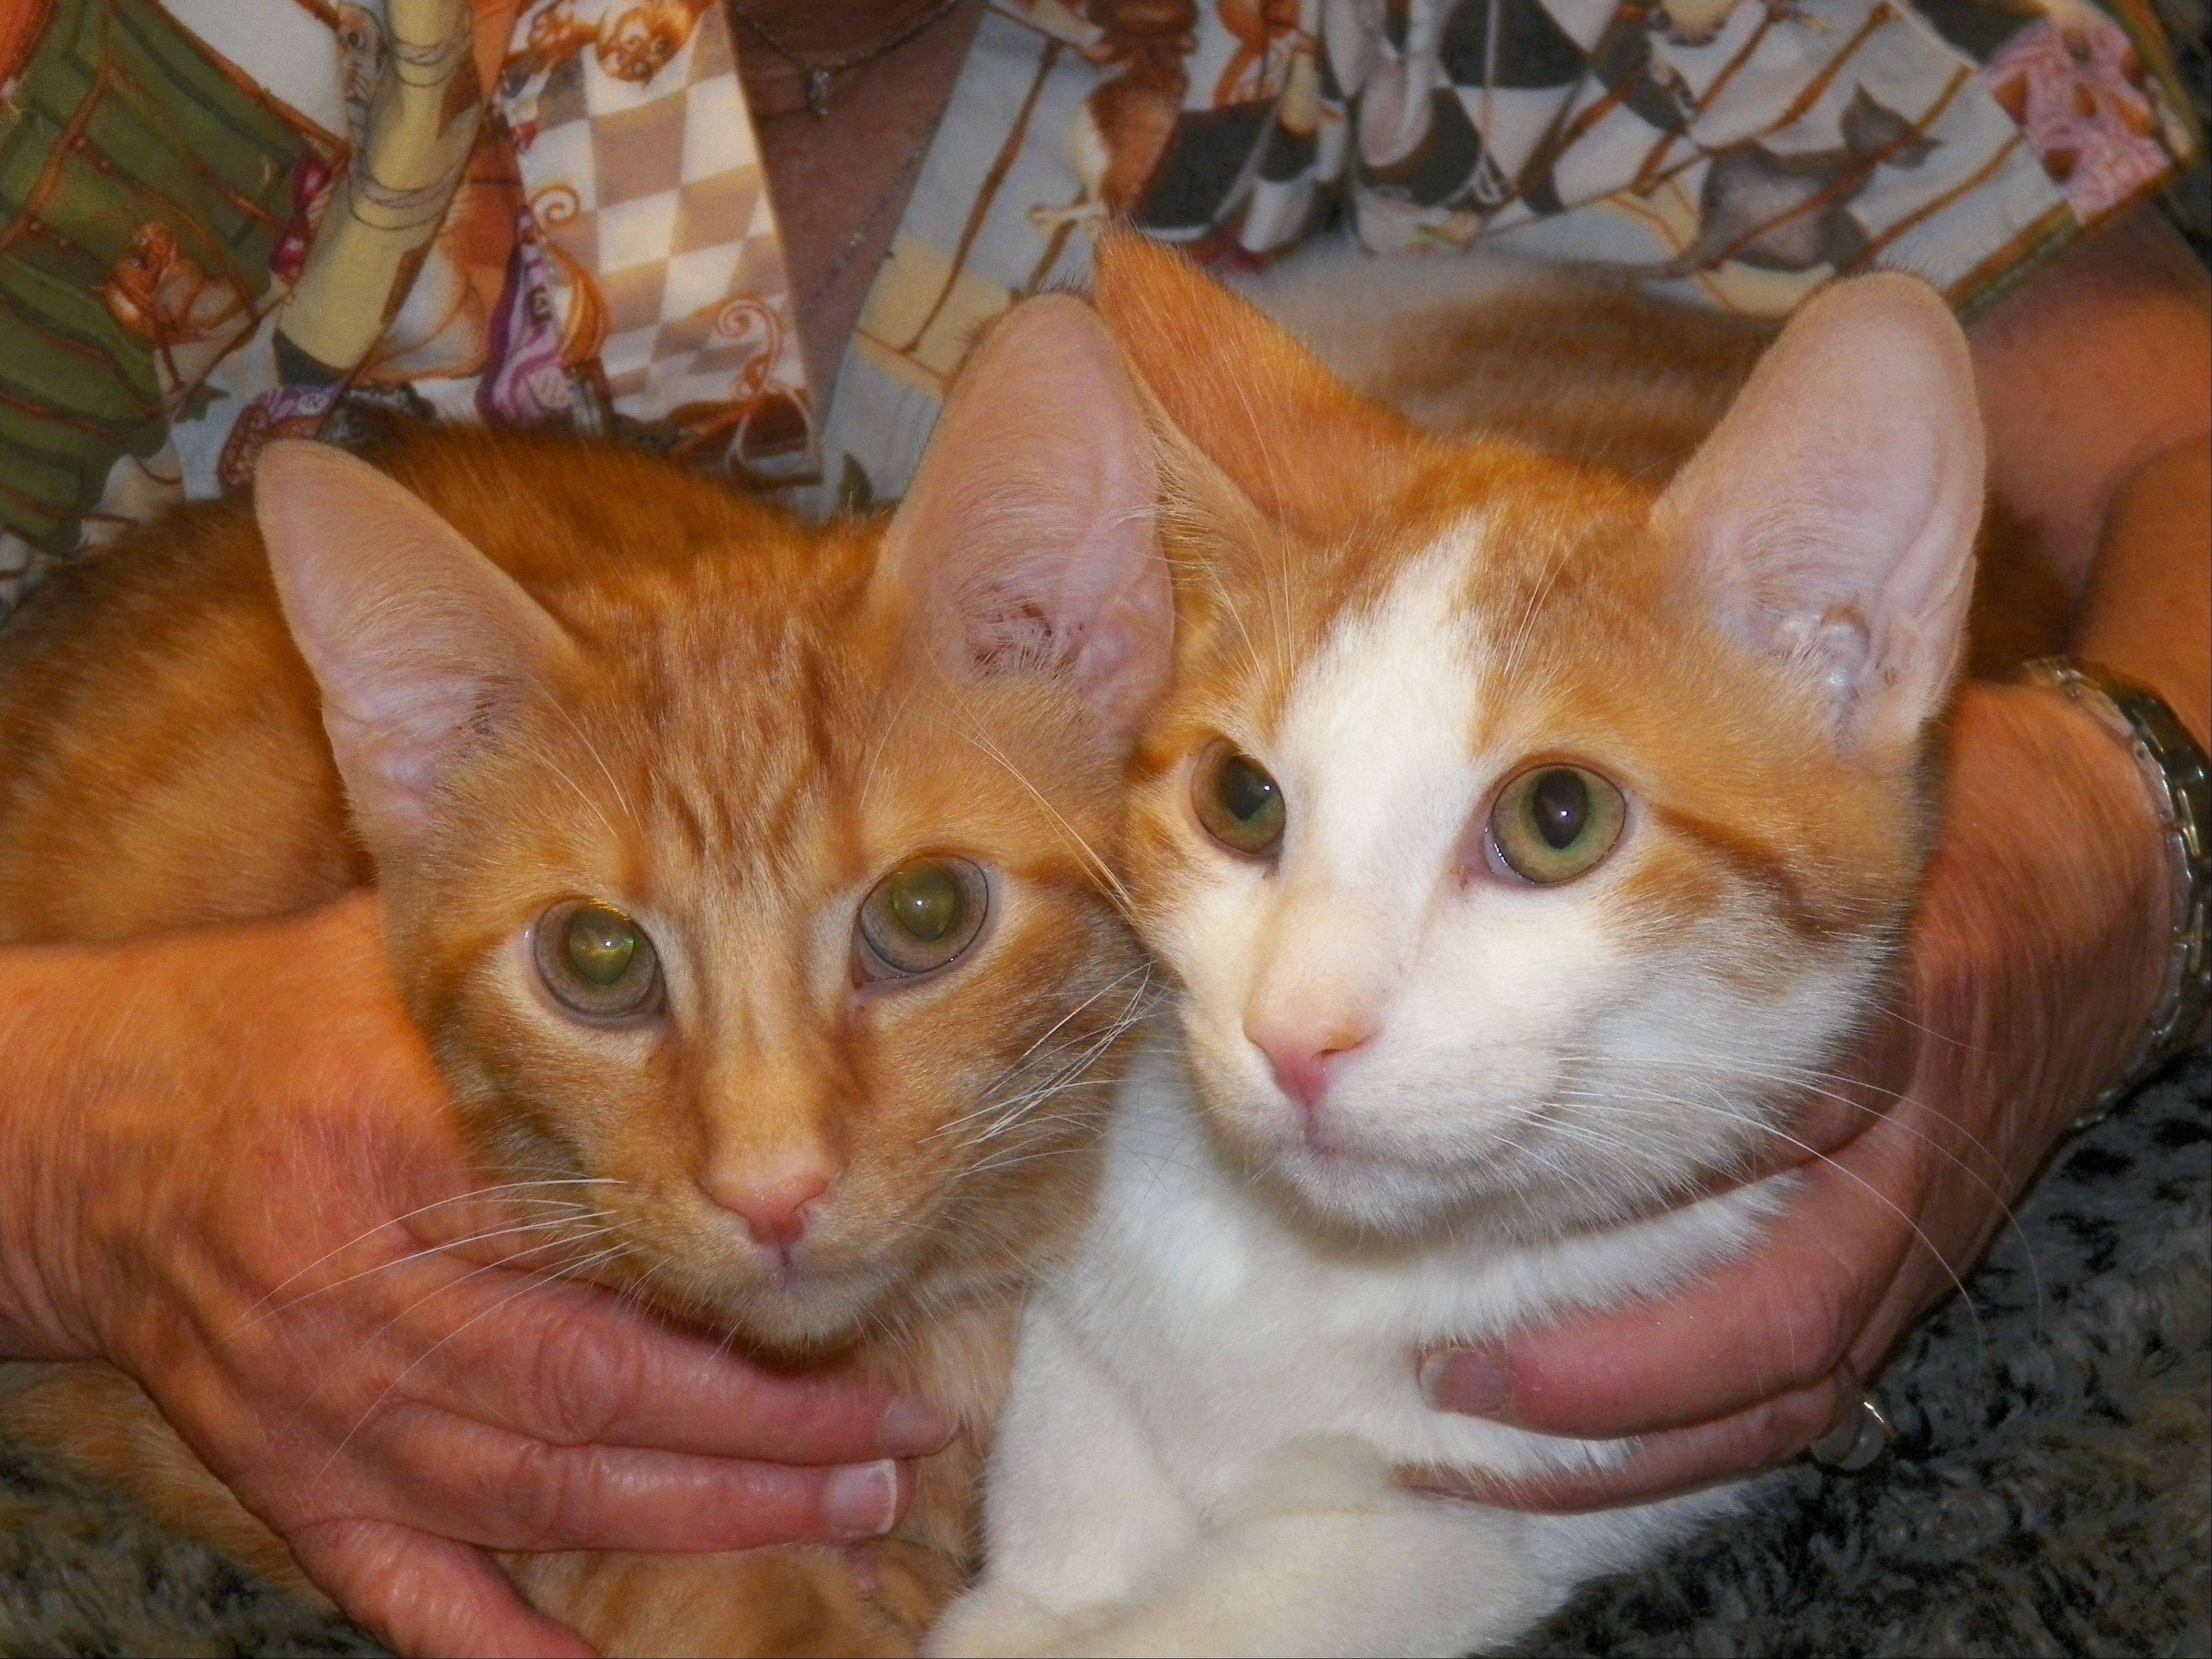 Roger and Rollie, 8-month-old buddies, need a home for the holidays.